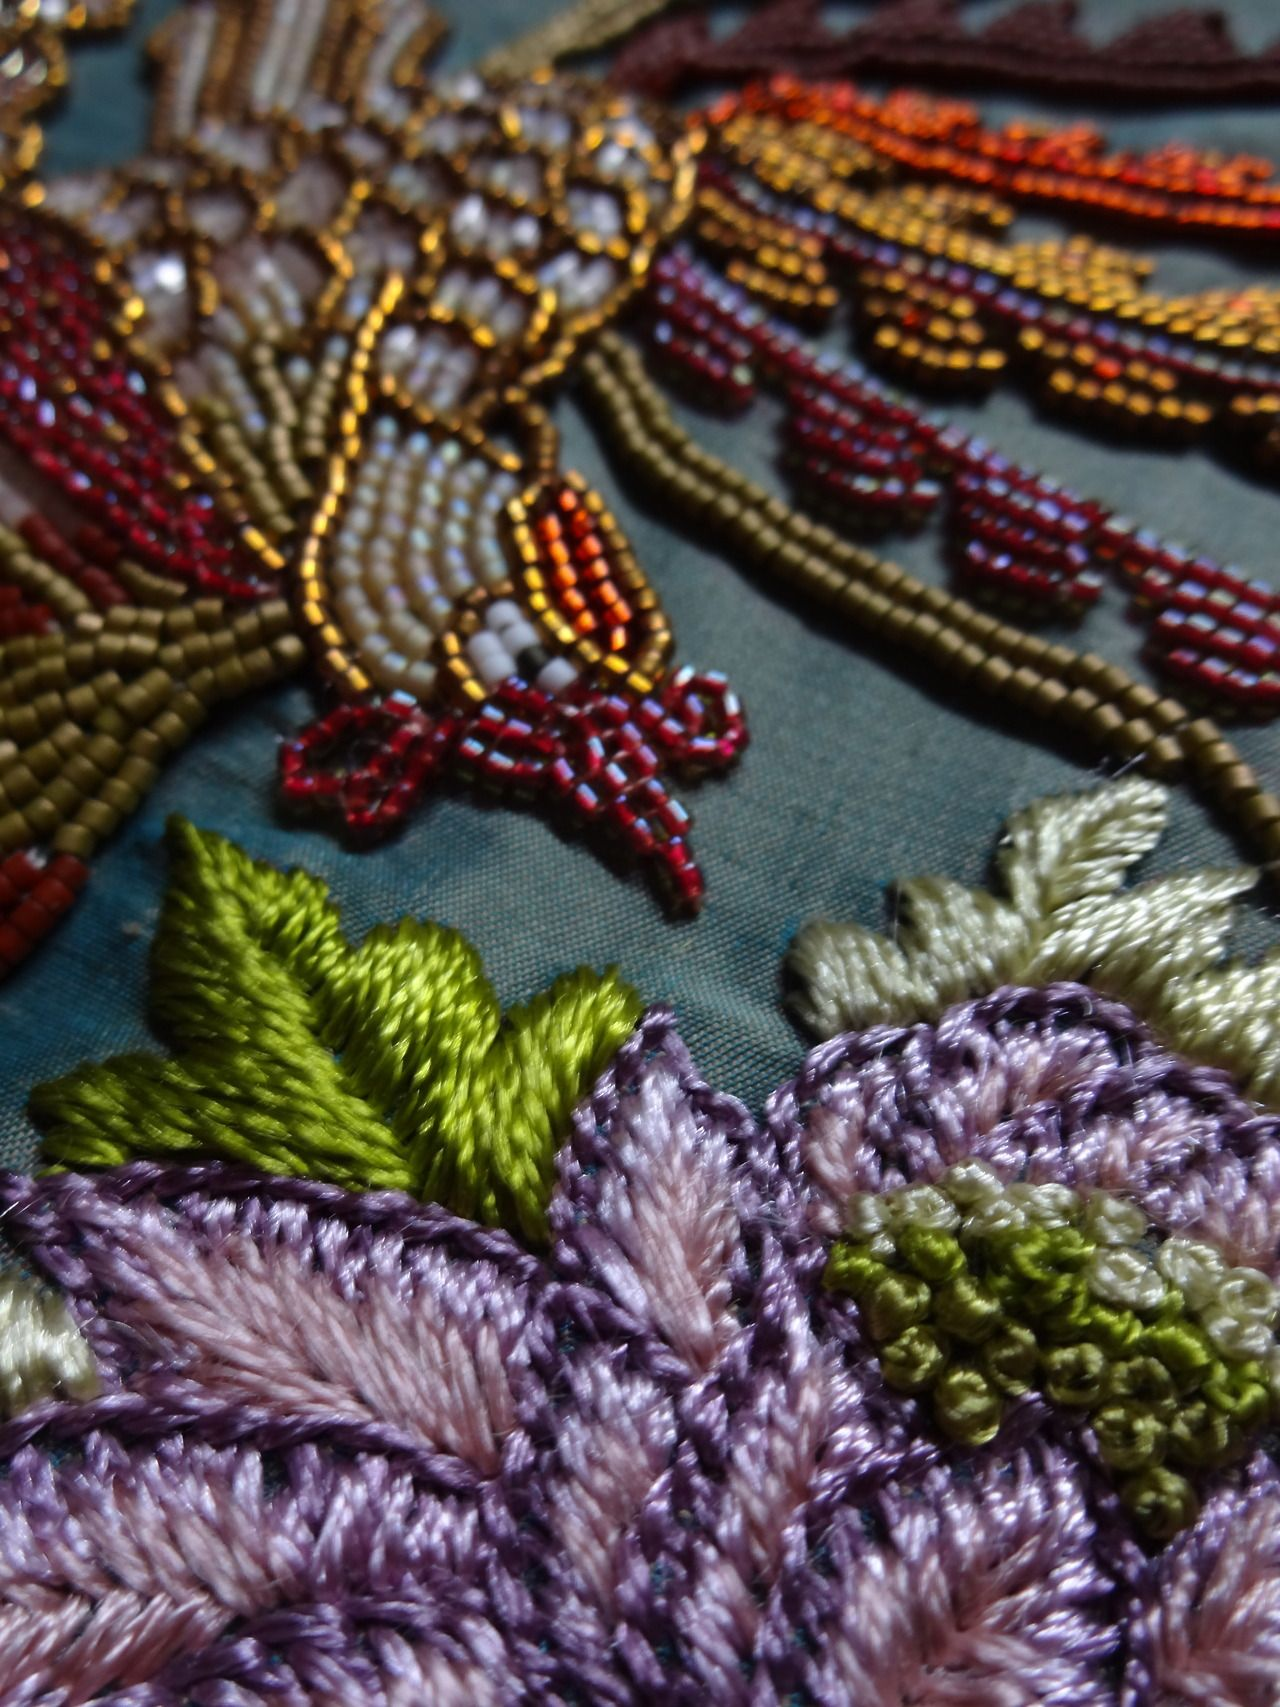 Detail from my new sculpture in progress. Beading and embroidery on silk inspired by Peranakan designs